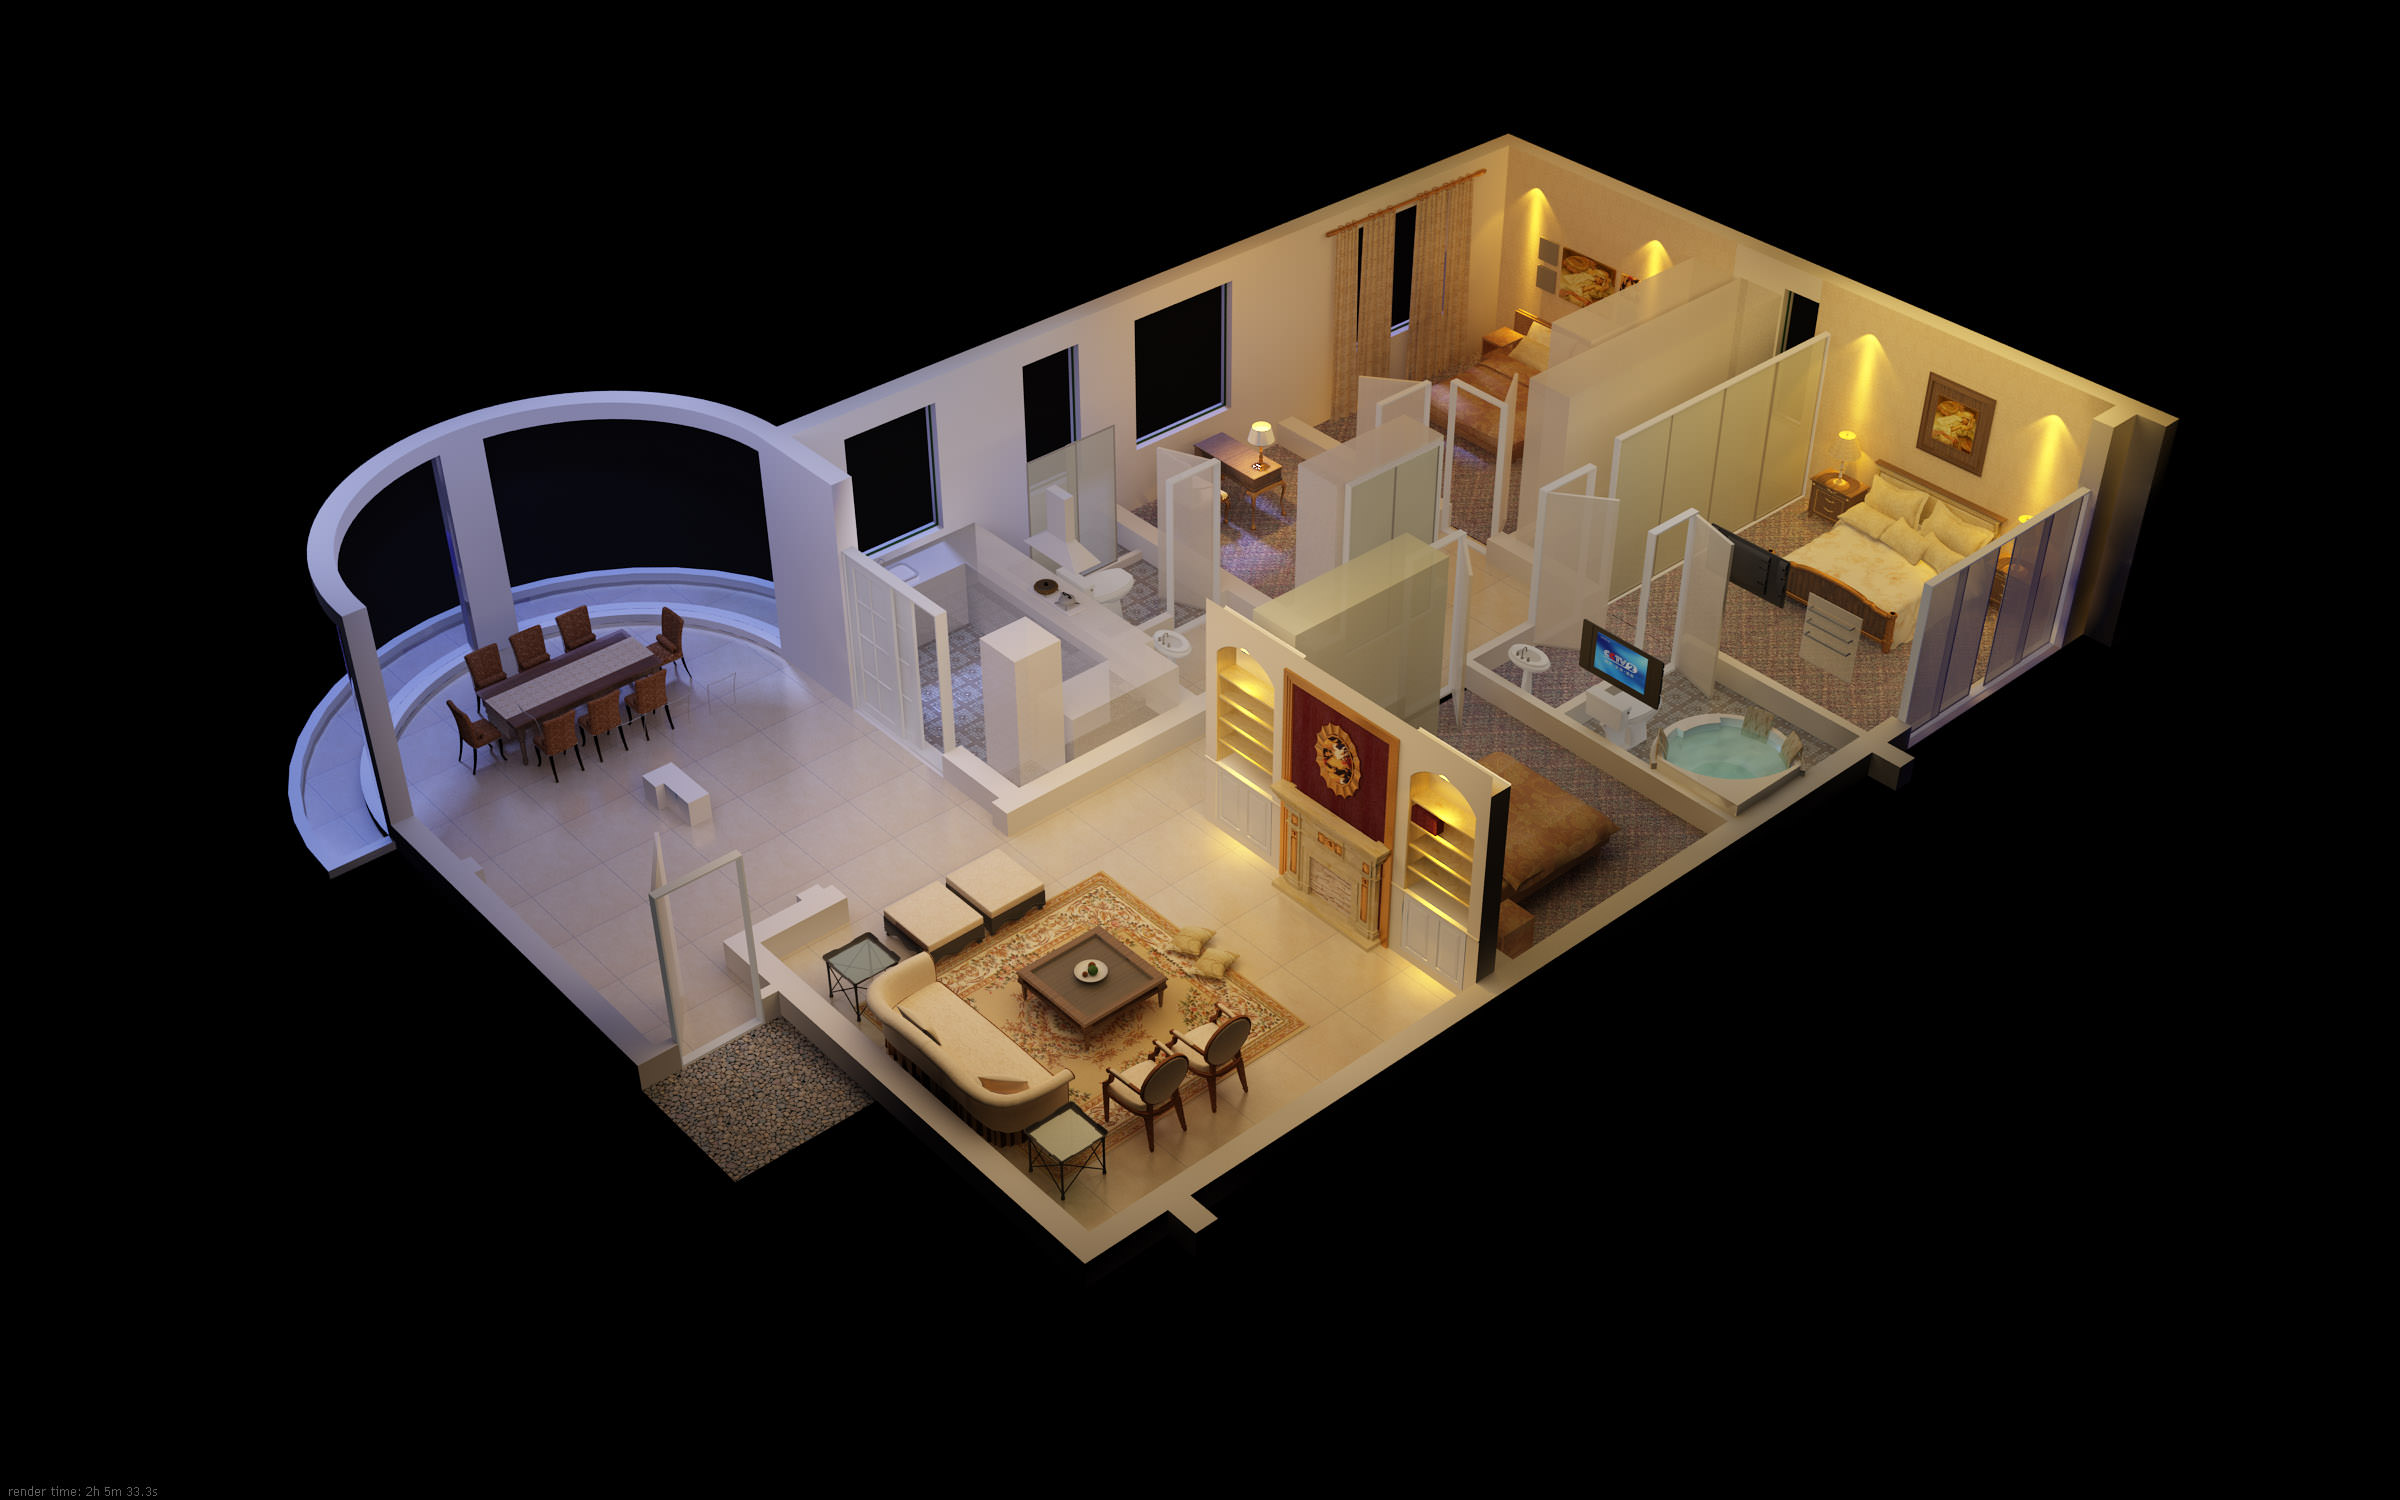 3D Luxurious House with Designer Interior | CGTrader on container house models, apple house models, 2d house models, black house models, architectural house models, beach house models, small house models, doll house models, home models, design house models, tiny house models, art house models, white house us models, cardboard house models, india house models, kerala house models, indian house models, metal house models, sketchup house models, school house models,